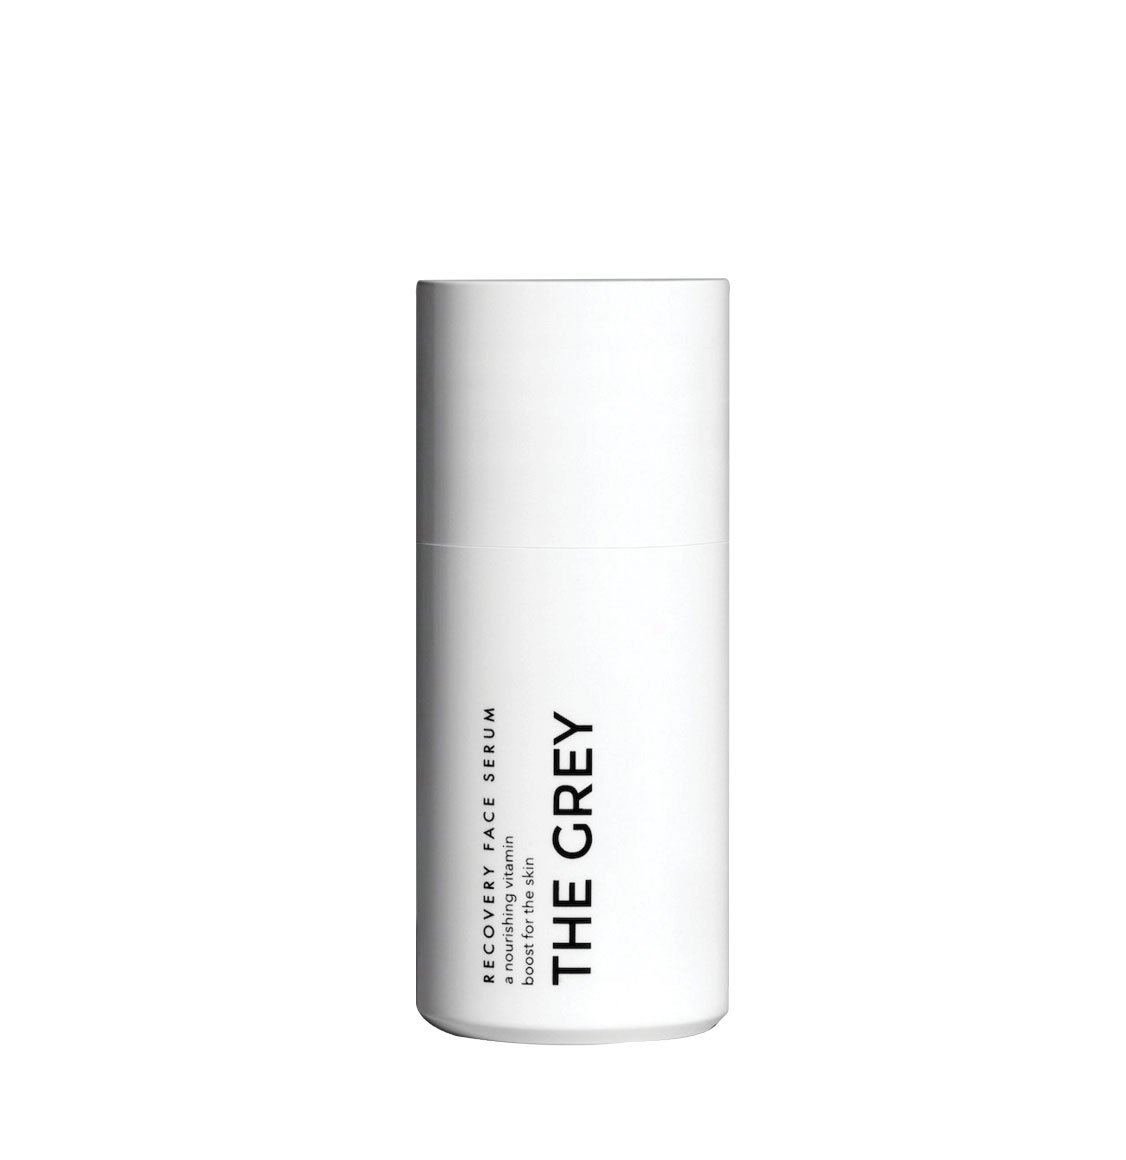 The Grey Recovery Face Serum 30ml